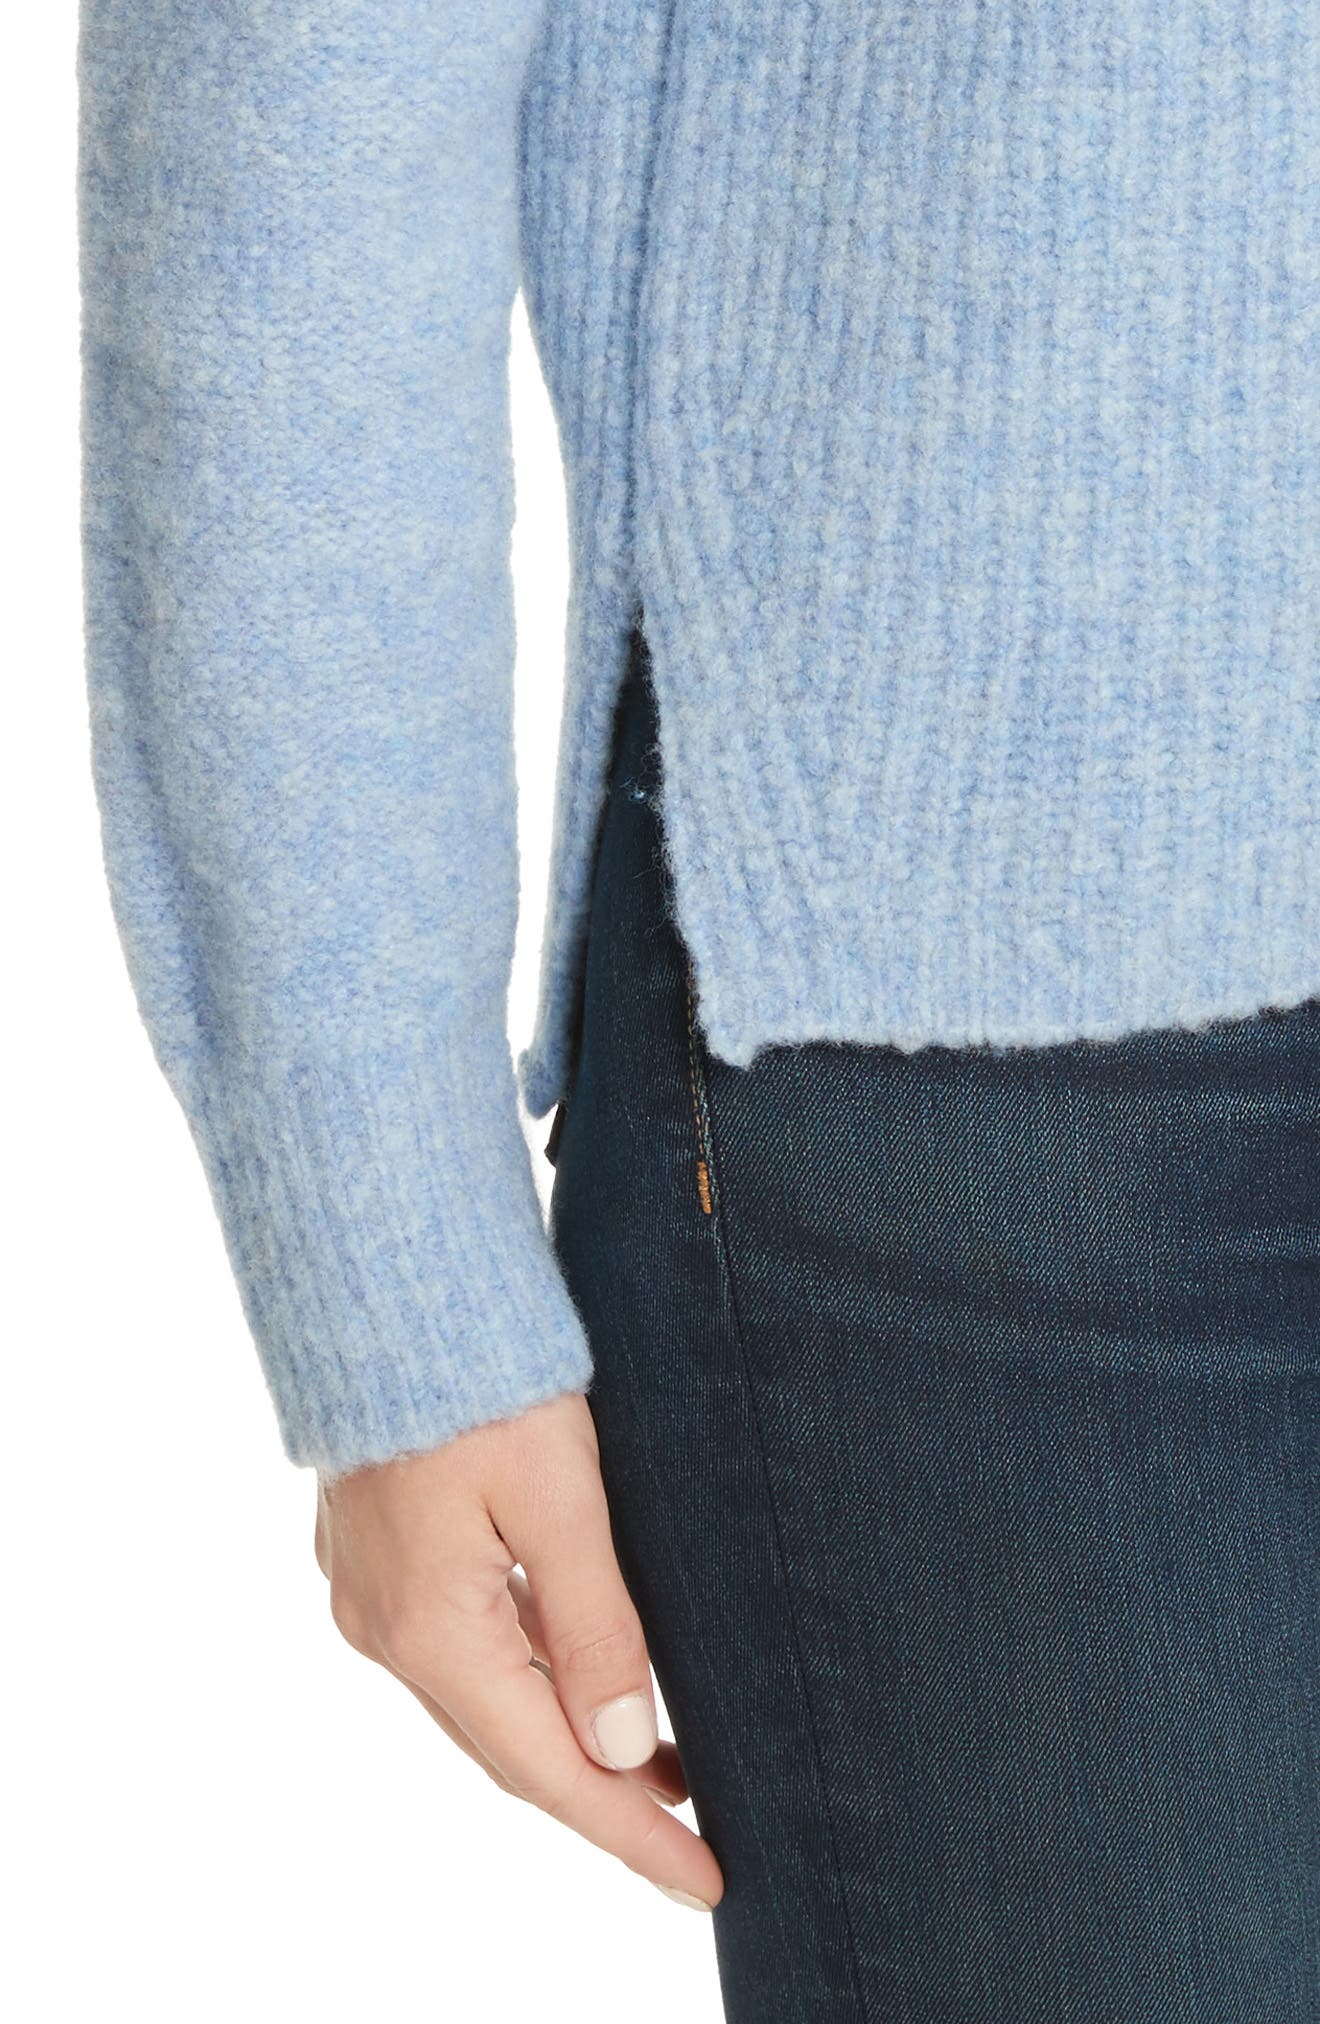 Francie Merino Wool Blend Sweater,                             Alternate thumbnail 4, color,                             455